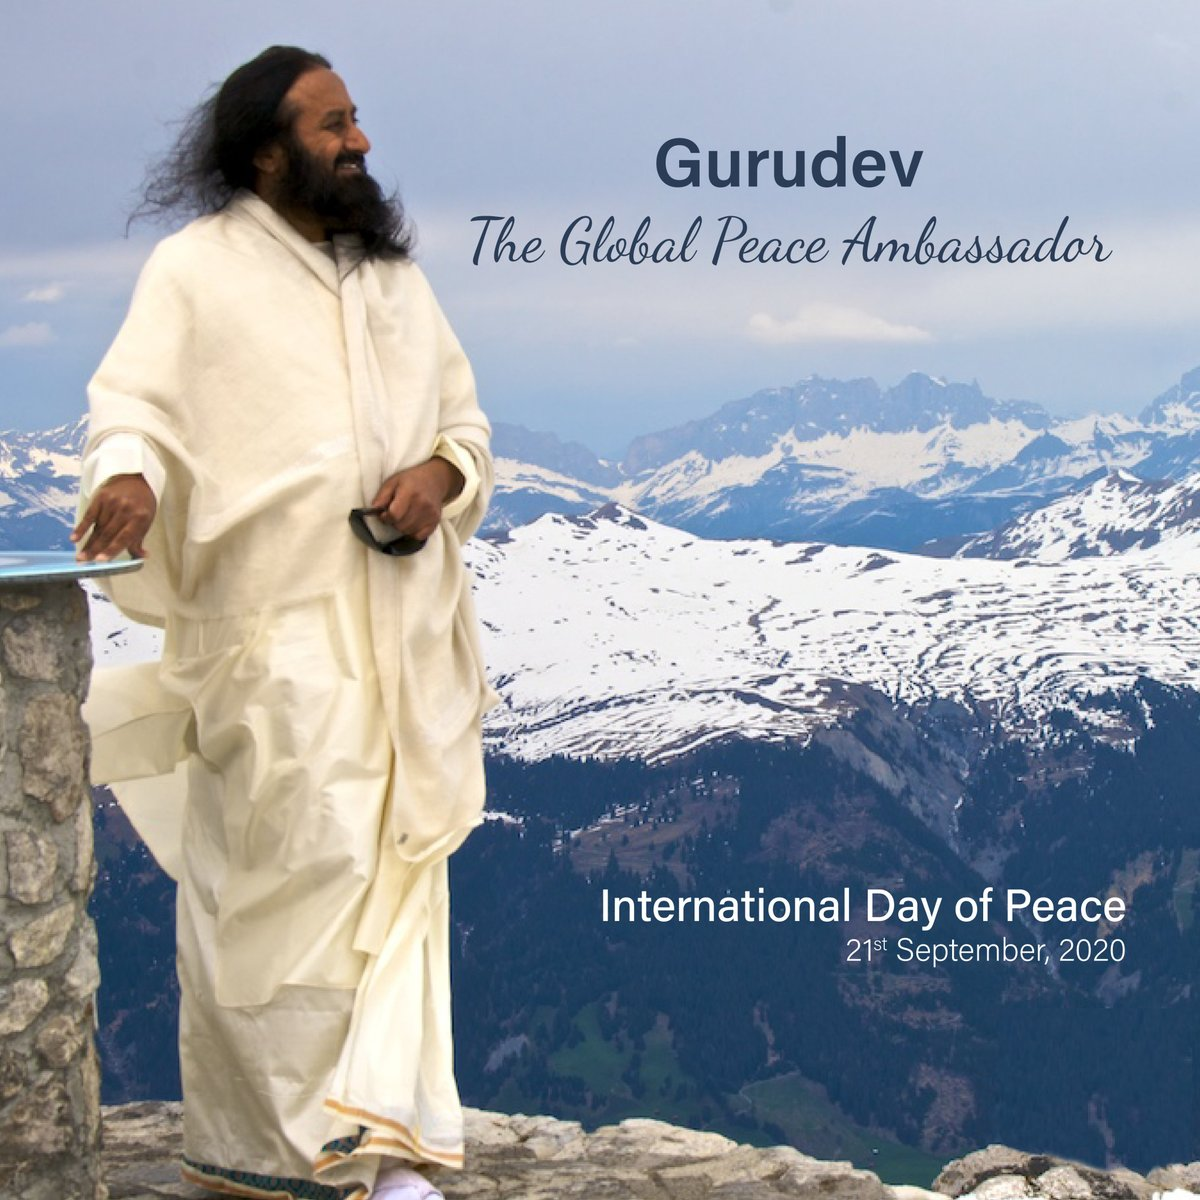 Four decades of nurturing peace in individuals,among societies & across Nations by Gurudev @SriSri.He heals hearts & minds, breaking the cycles of conflict in Colombia, Ayodhya; Syria & more.This work is a testament to the #fraternitybetweenNations.(2/2)  #InternationalPeaceDay https://t.co/5RC5rHIpQ6